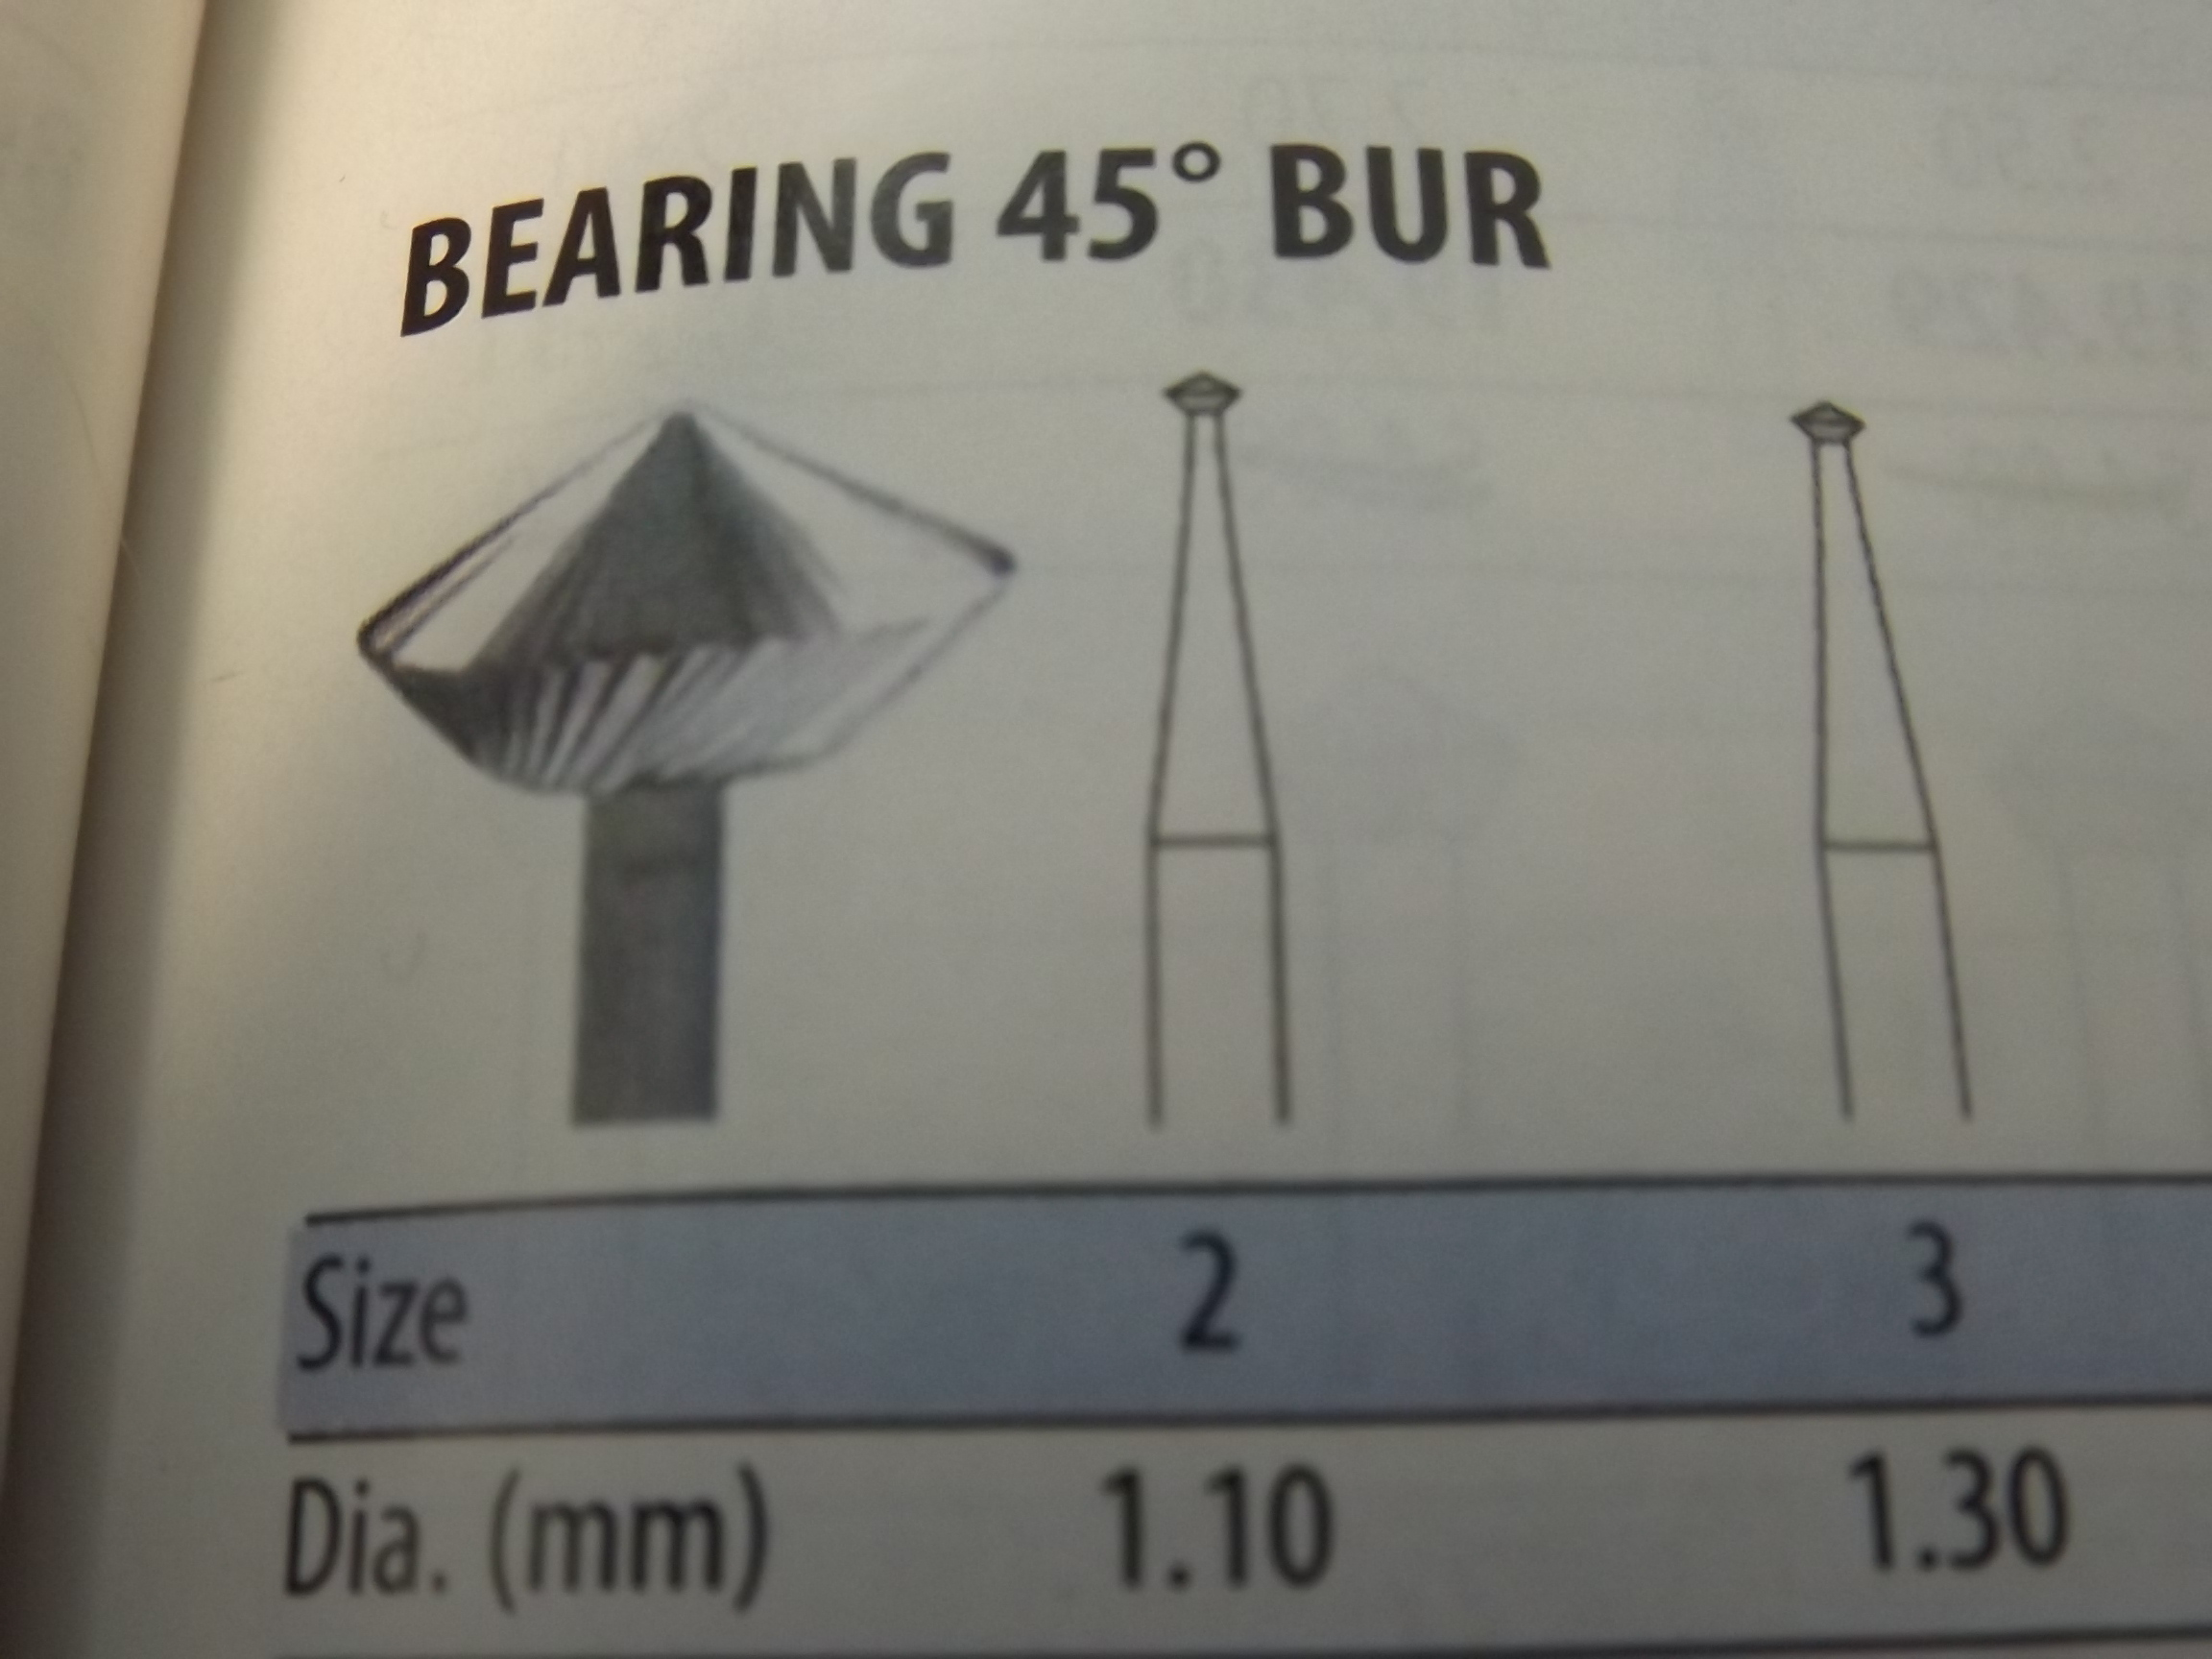 BR763/20 Hi Speed Steel 45* Bearing Burs #20--Grobet #19.400